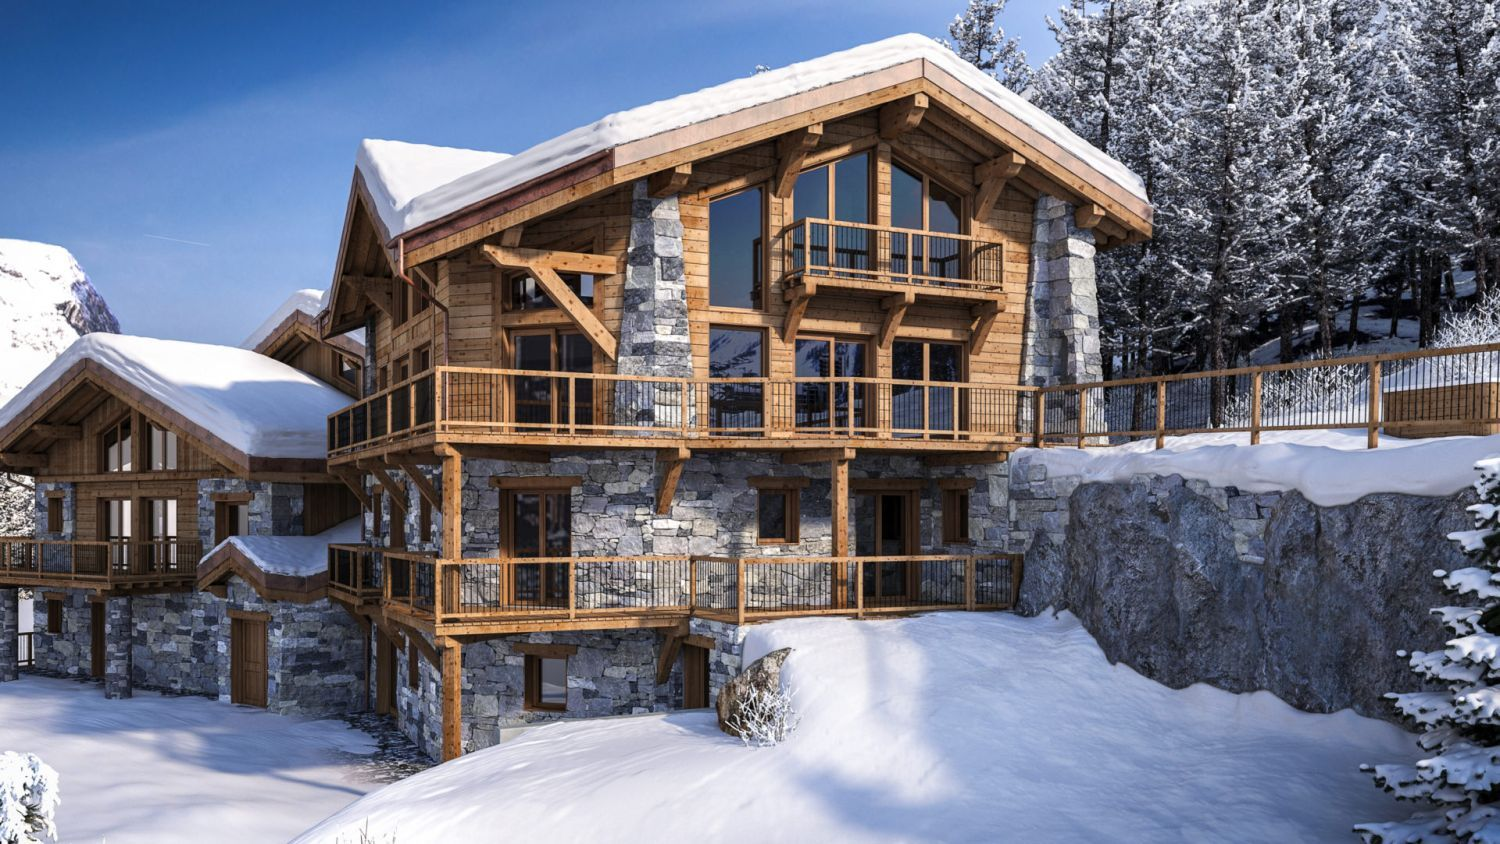 The Farmhouse Val D Isere Chalet Machapuchare New Ski Chalets 2018 19 Ski Chalet Gym